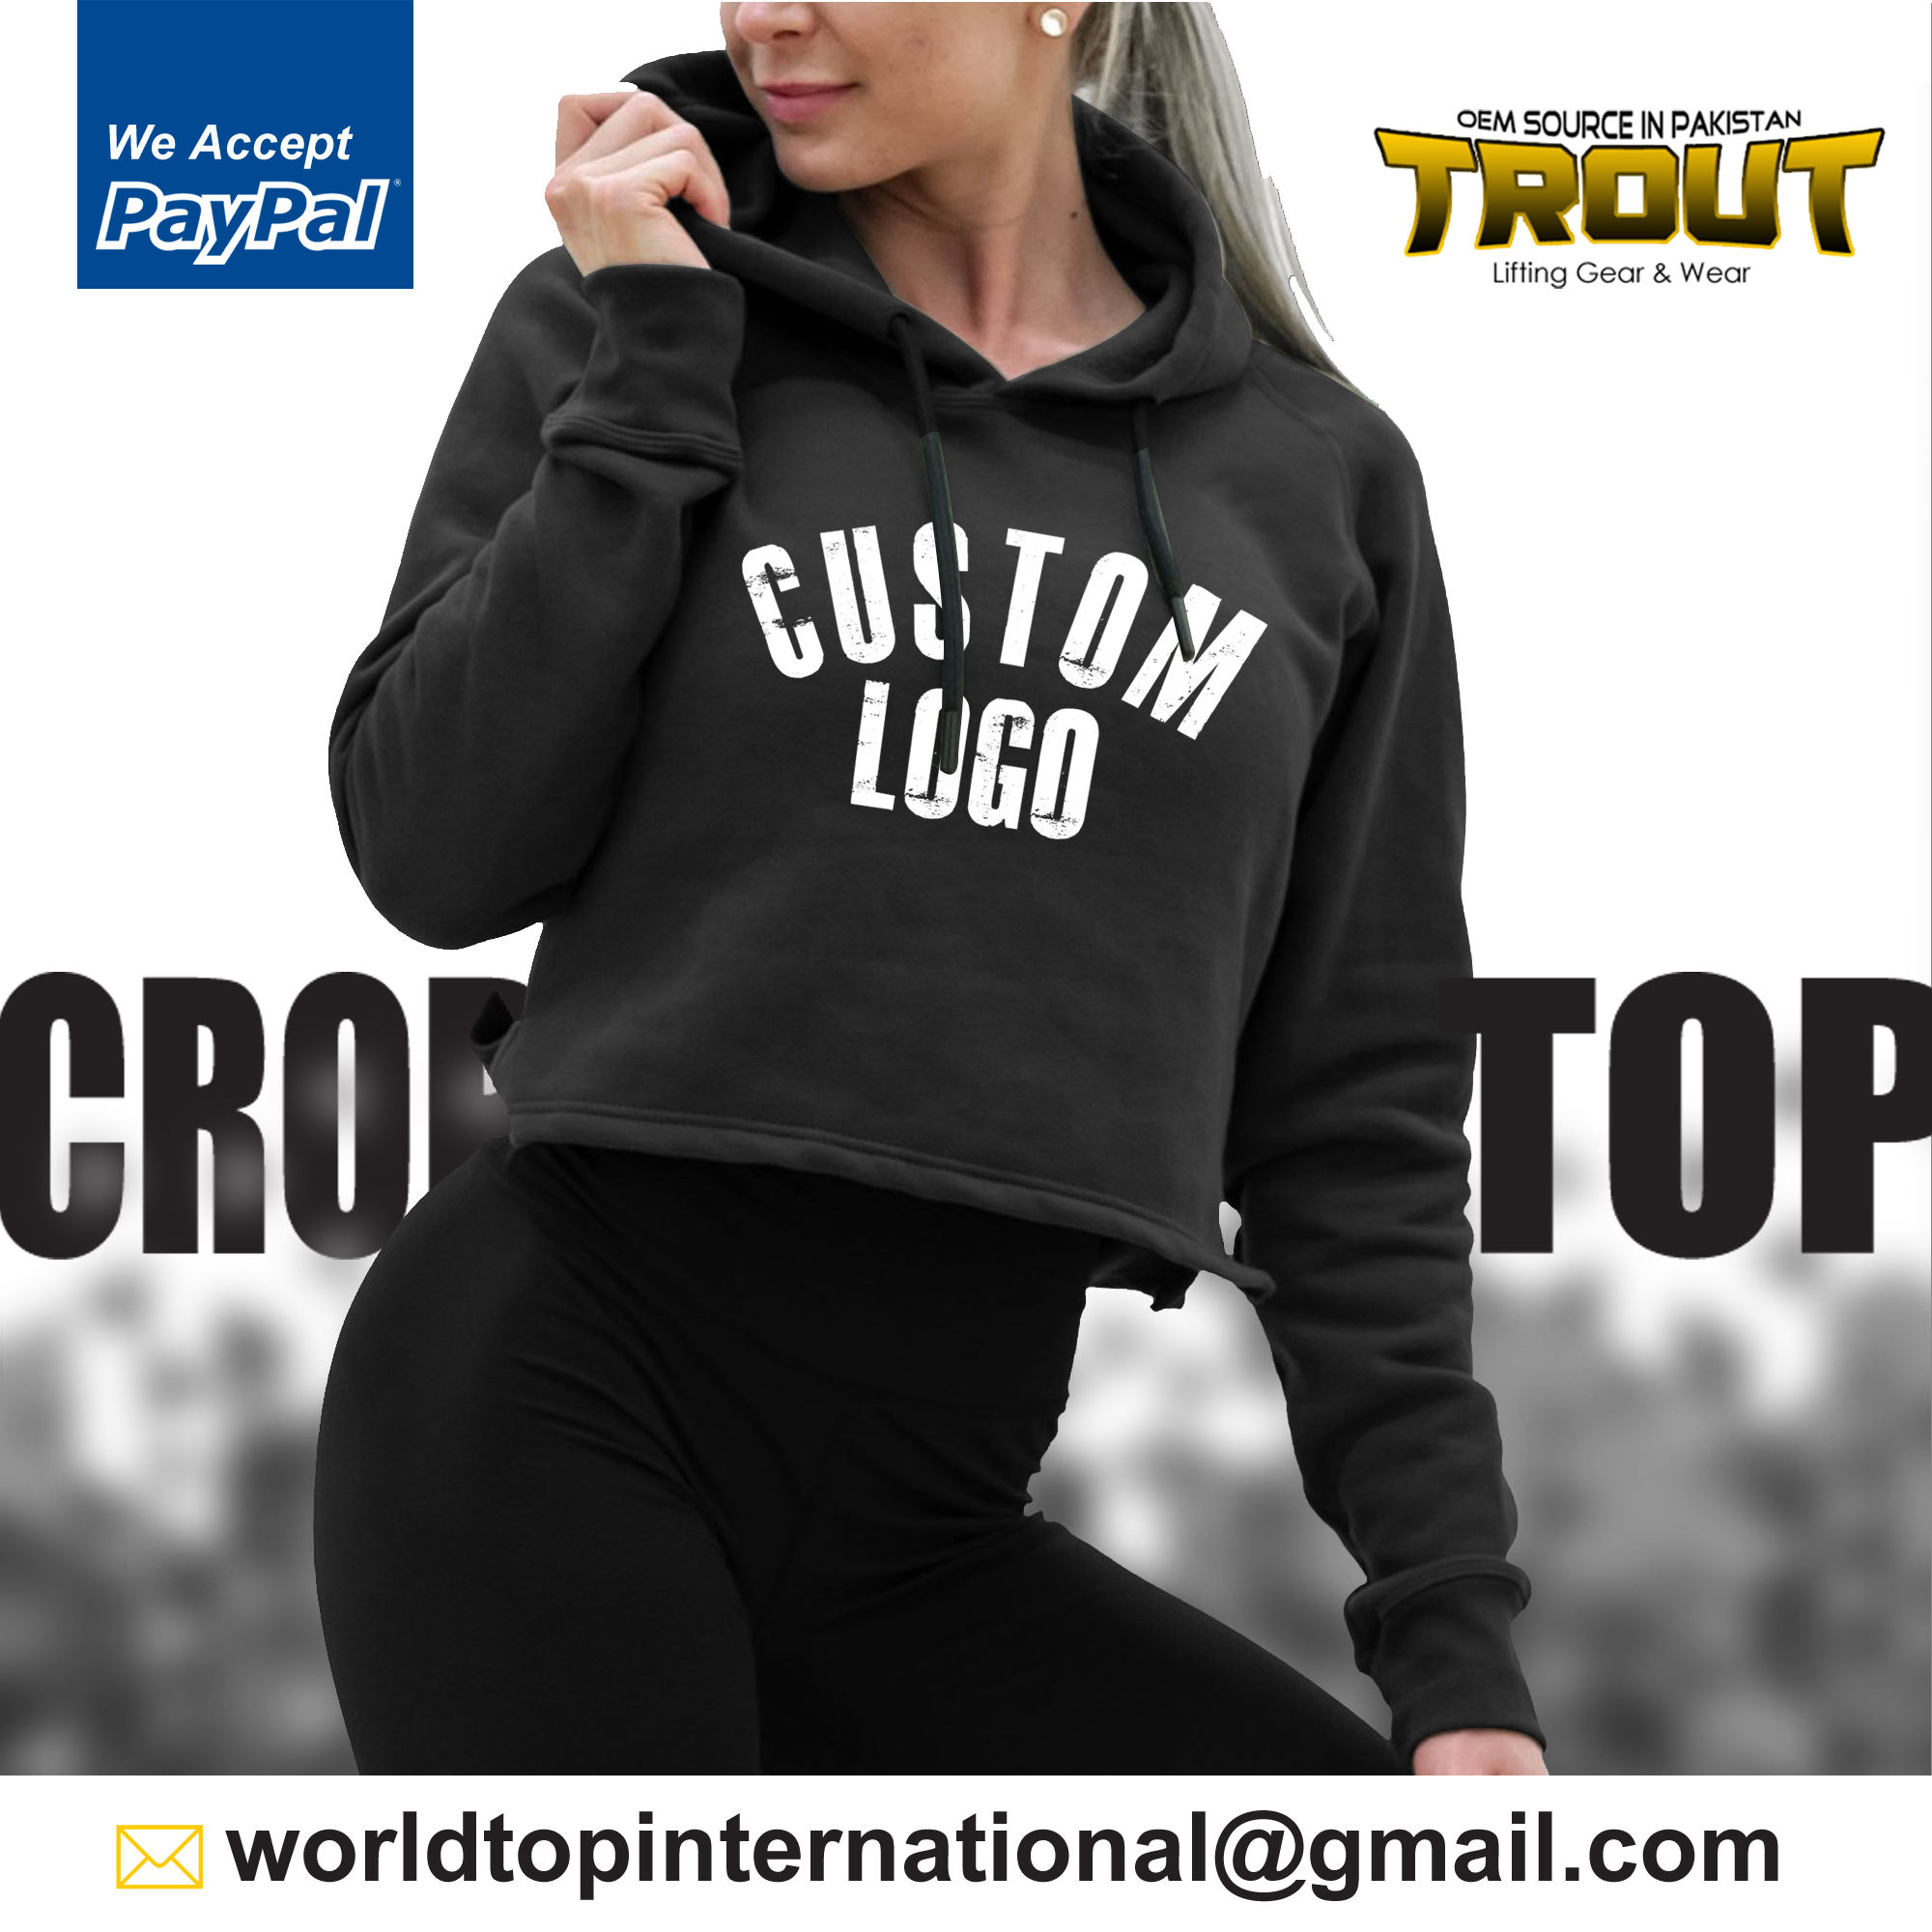 Women Trendy Sexy Hoodie Pullover / Crop Top Blouse Gym Sports Training Sweatshirt / Pull Over Full Length Sleeve Sweatshirt